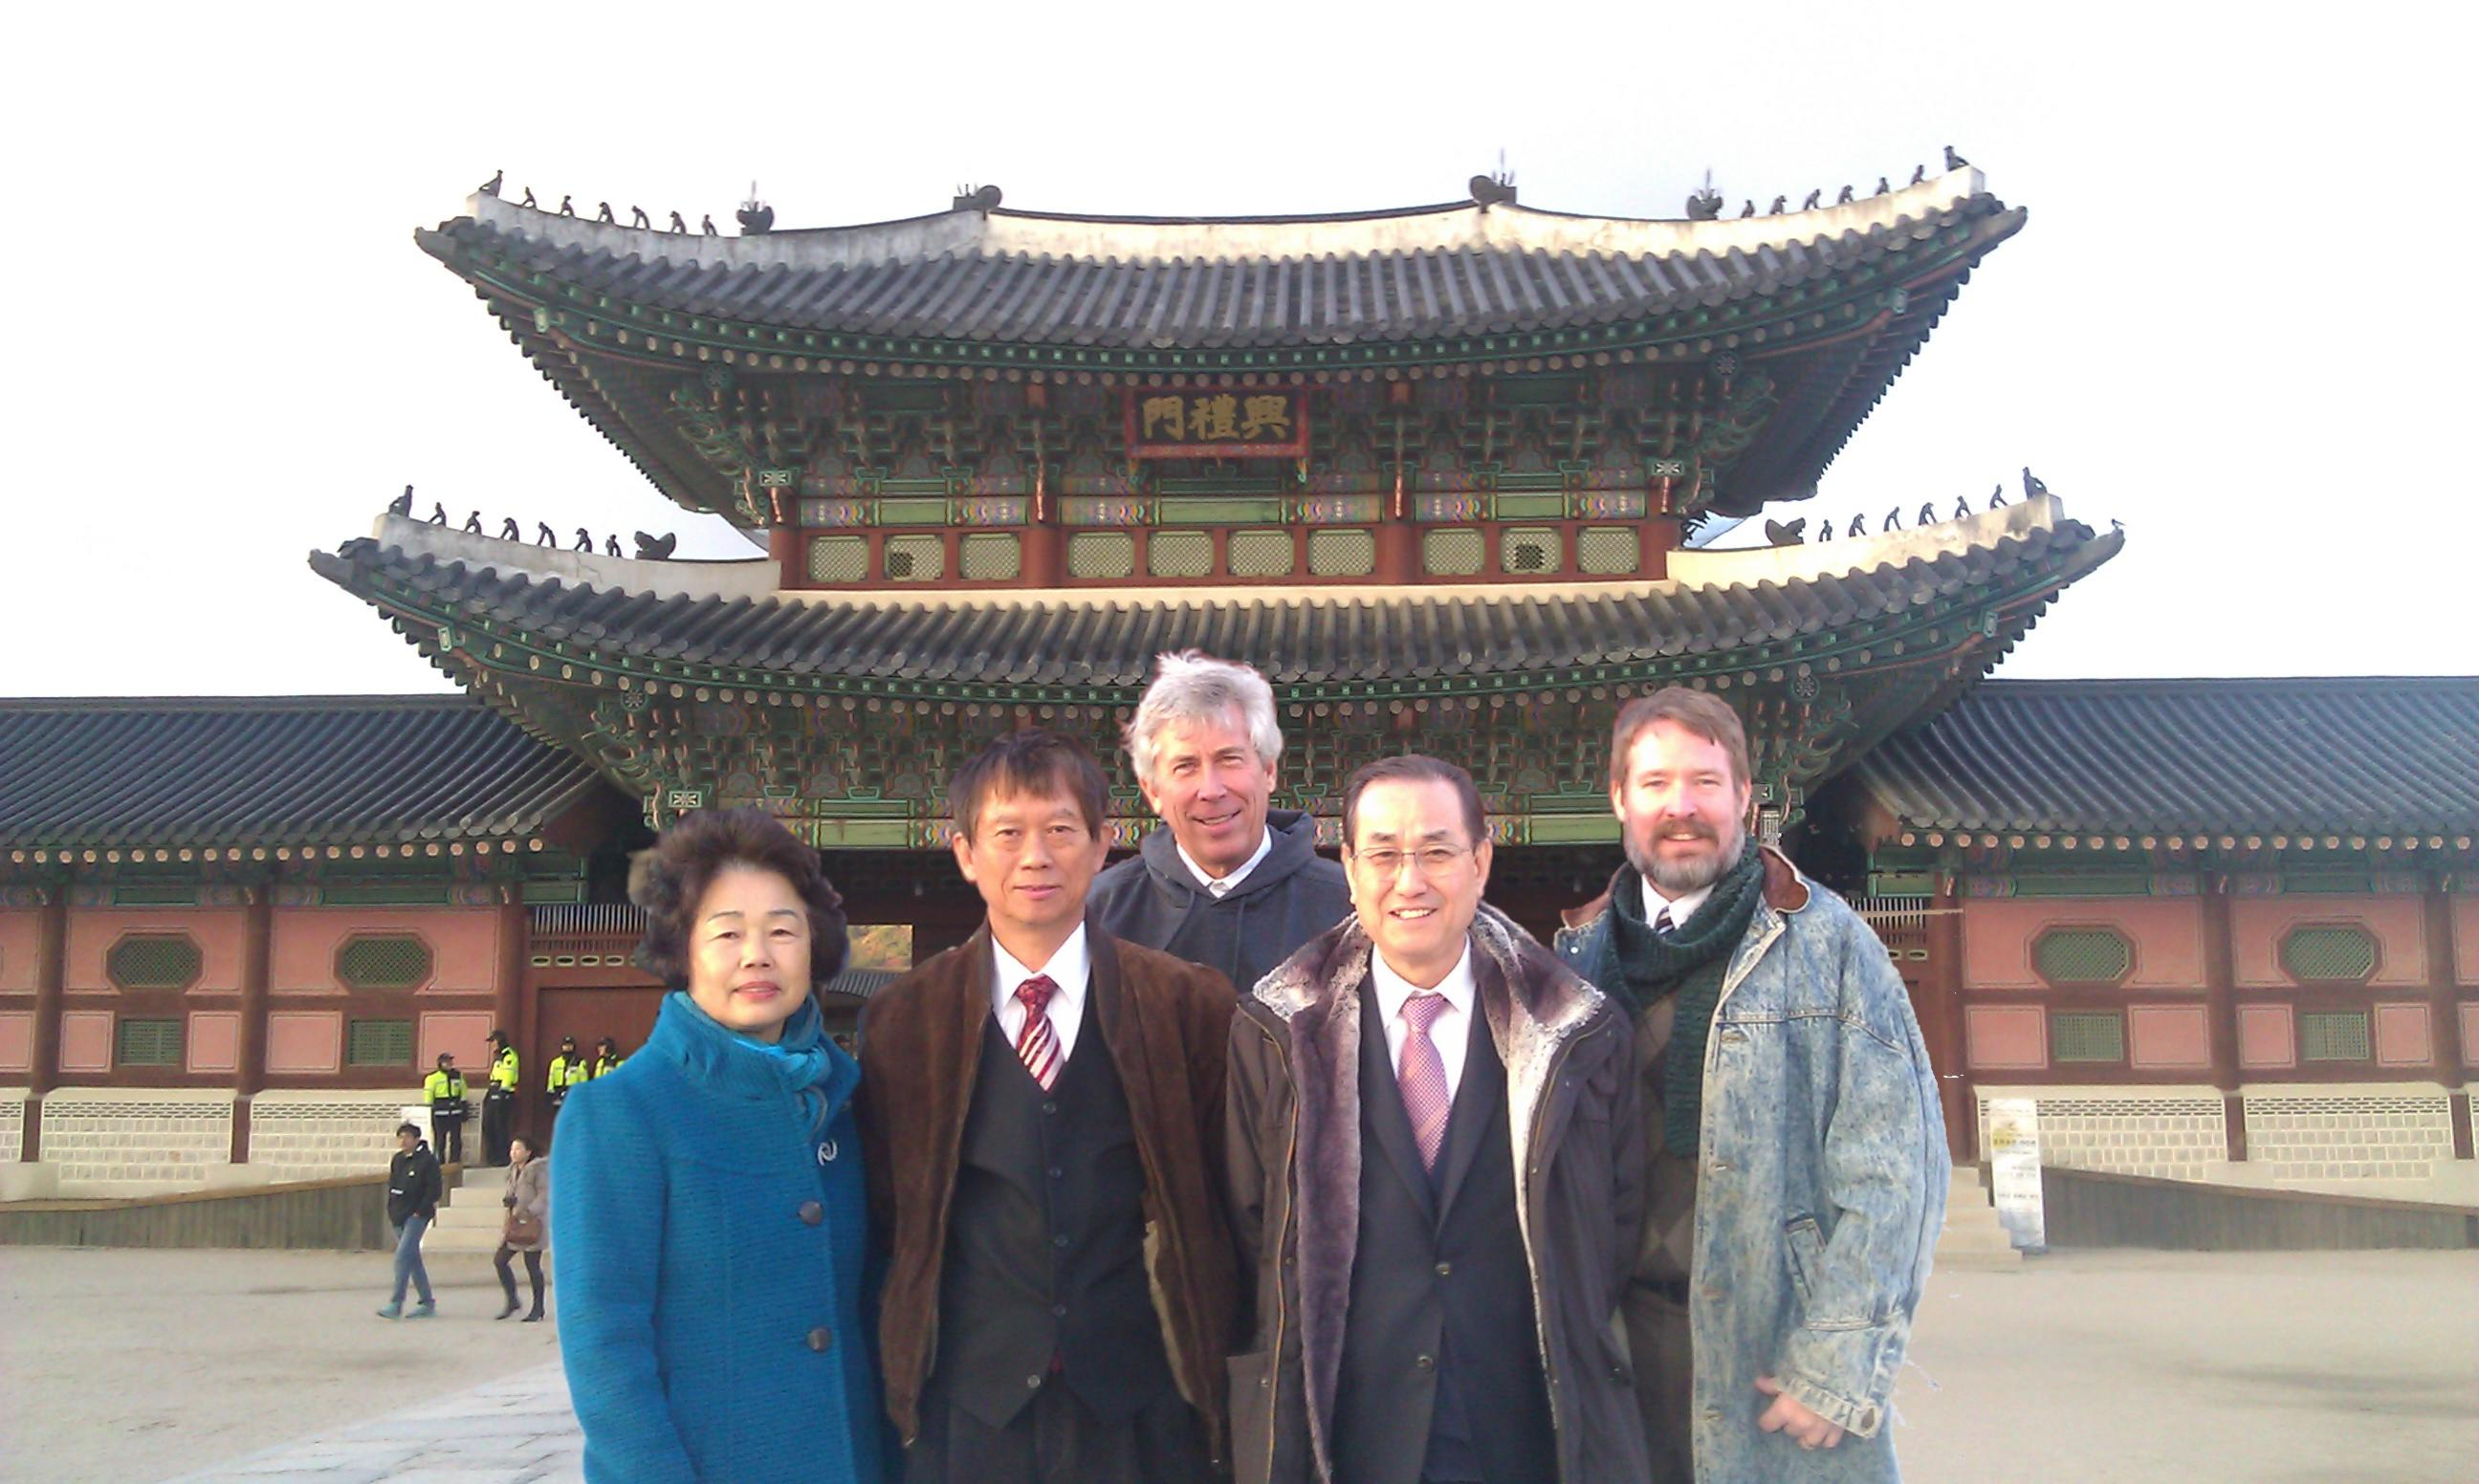 Thumbnail for the post titled: Photos From Korea Visit